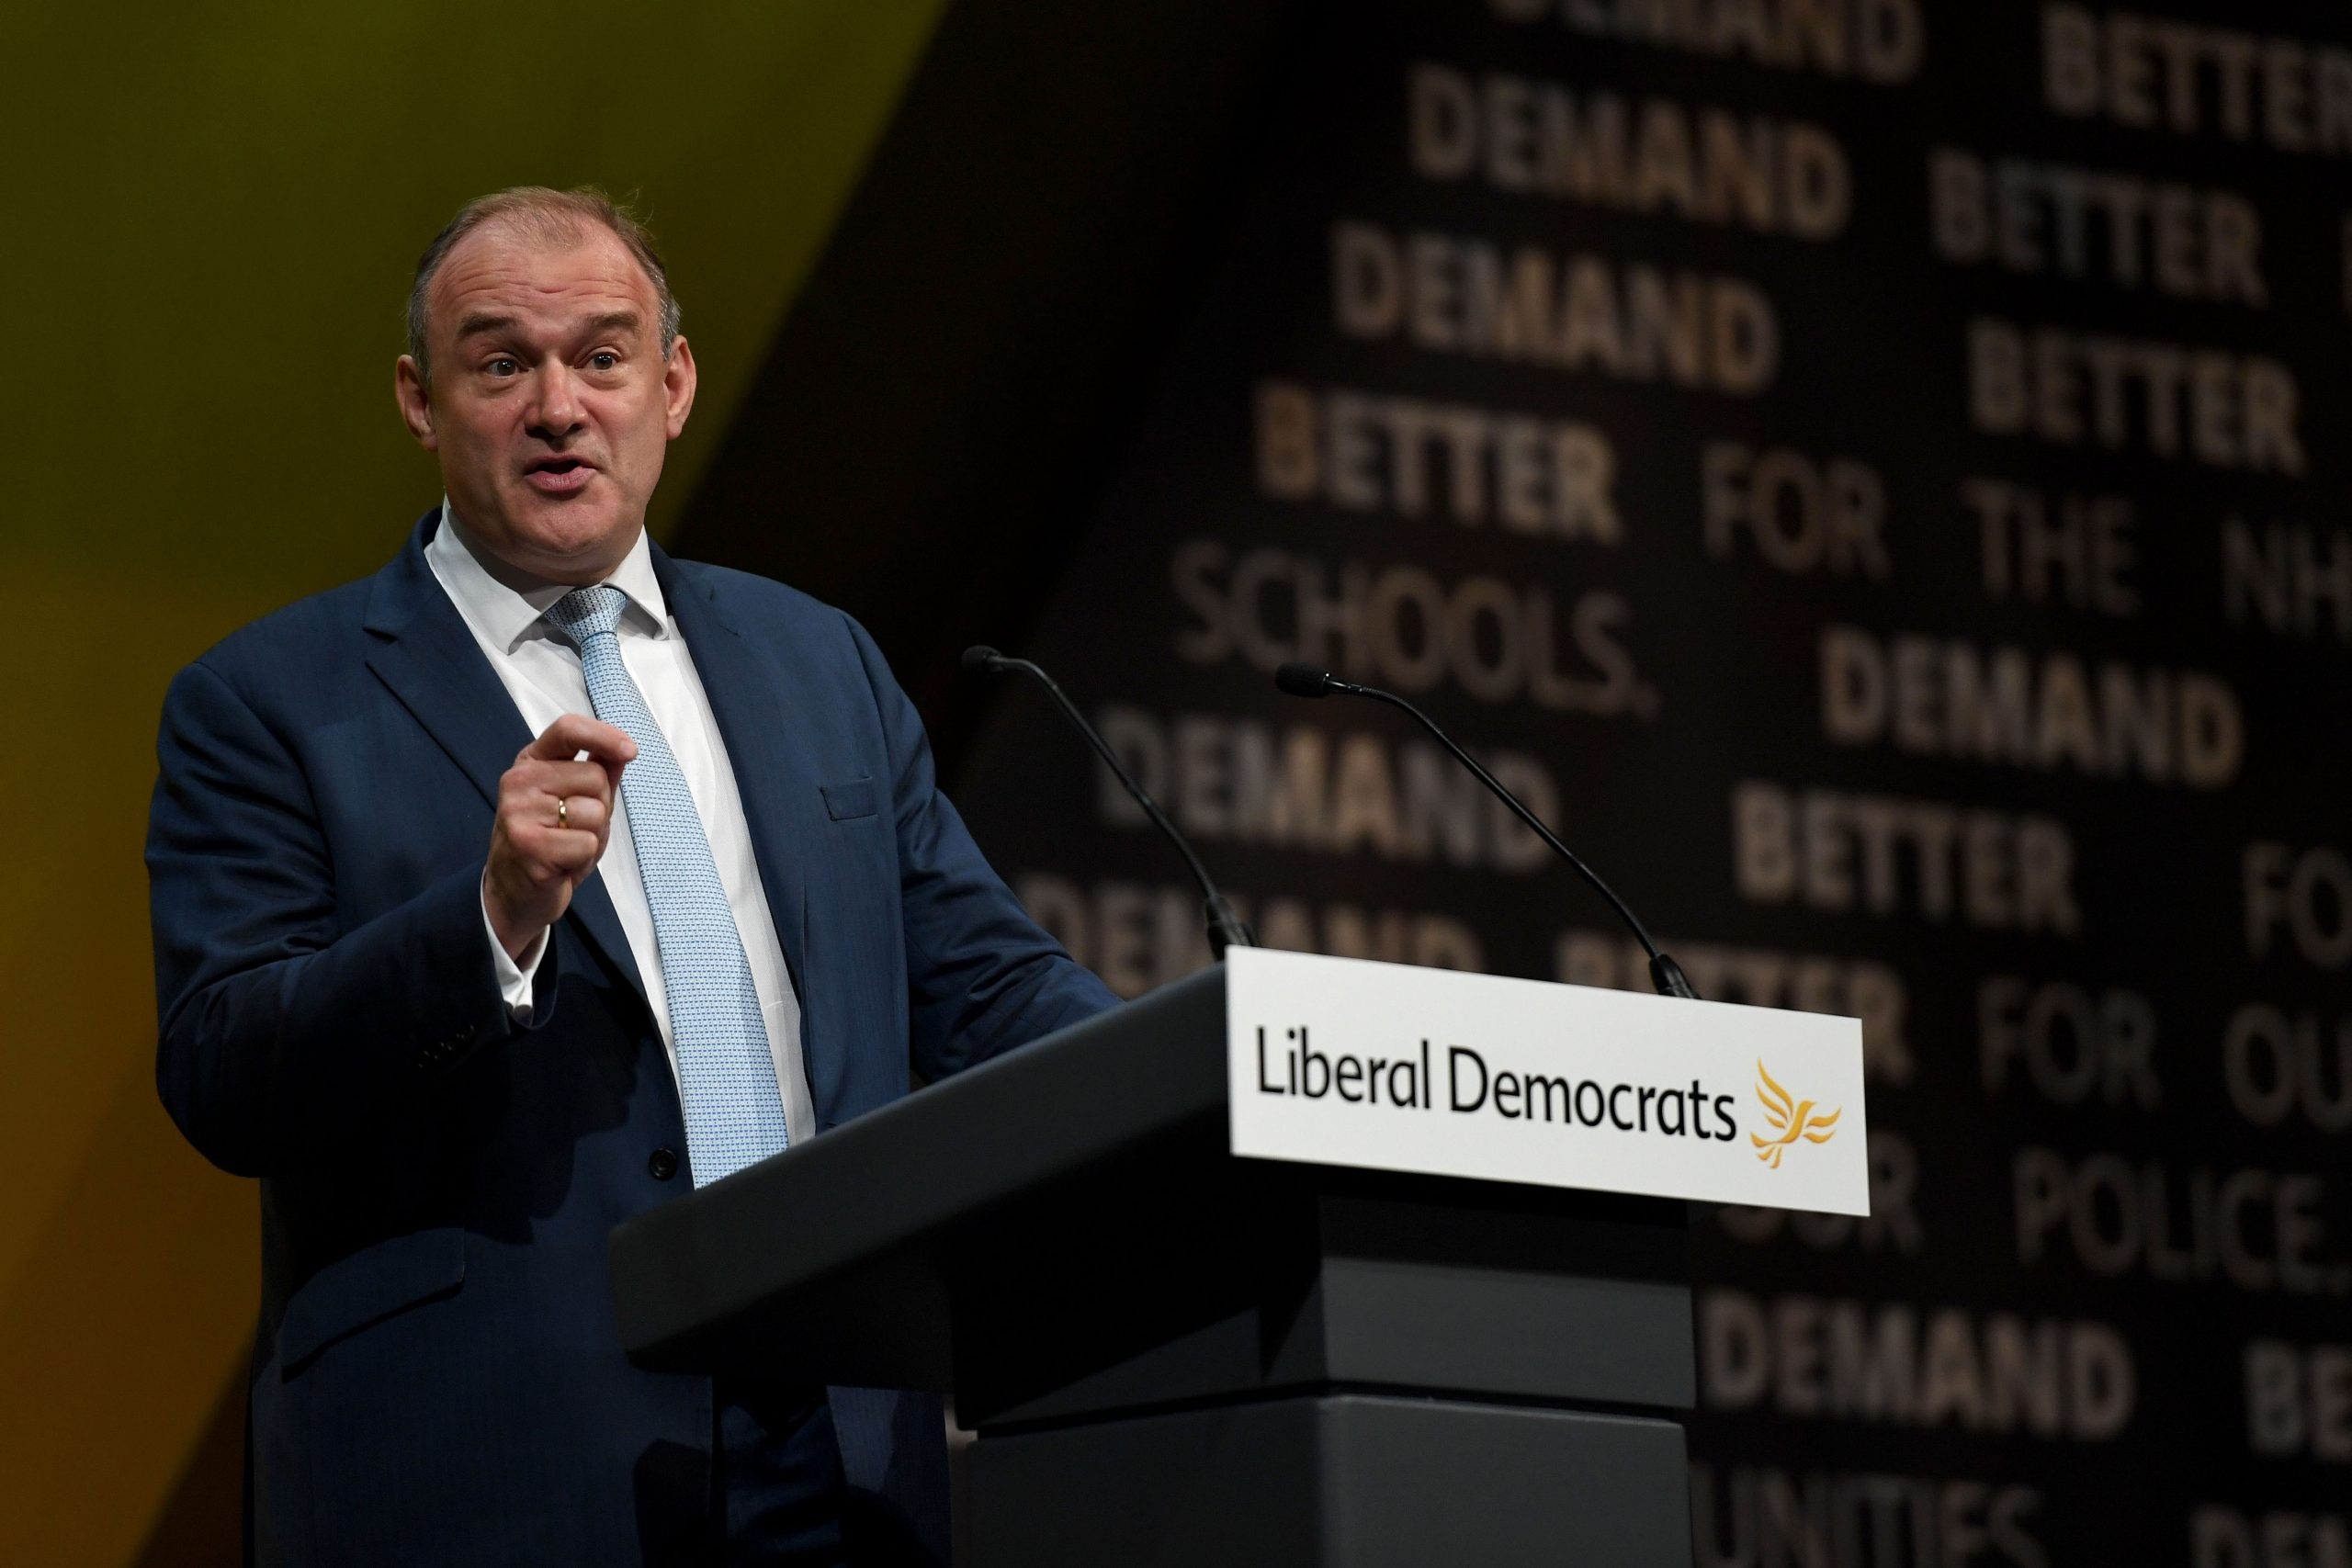 Sir Ed Davey (Photo by Finnbarr Webster/Getty Images)